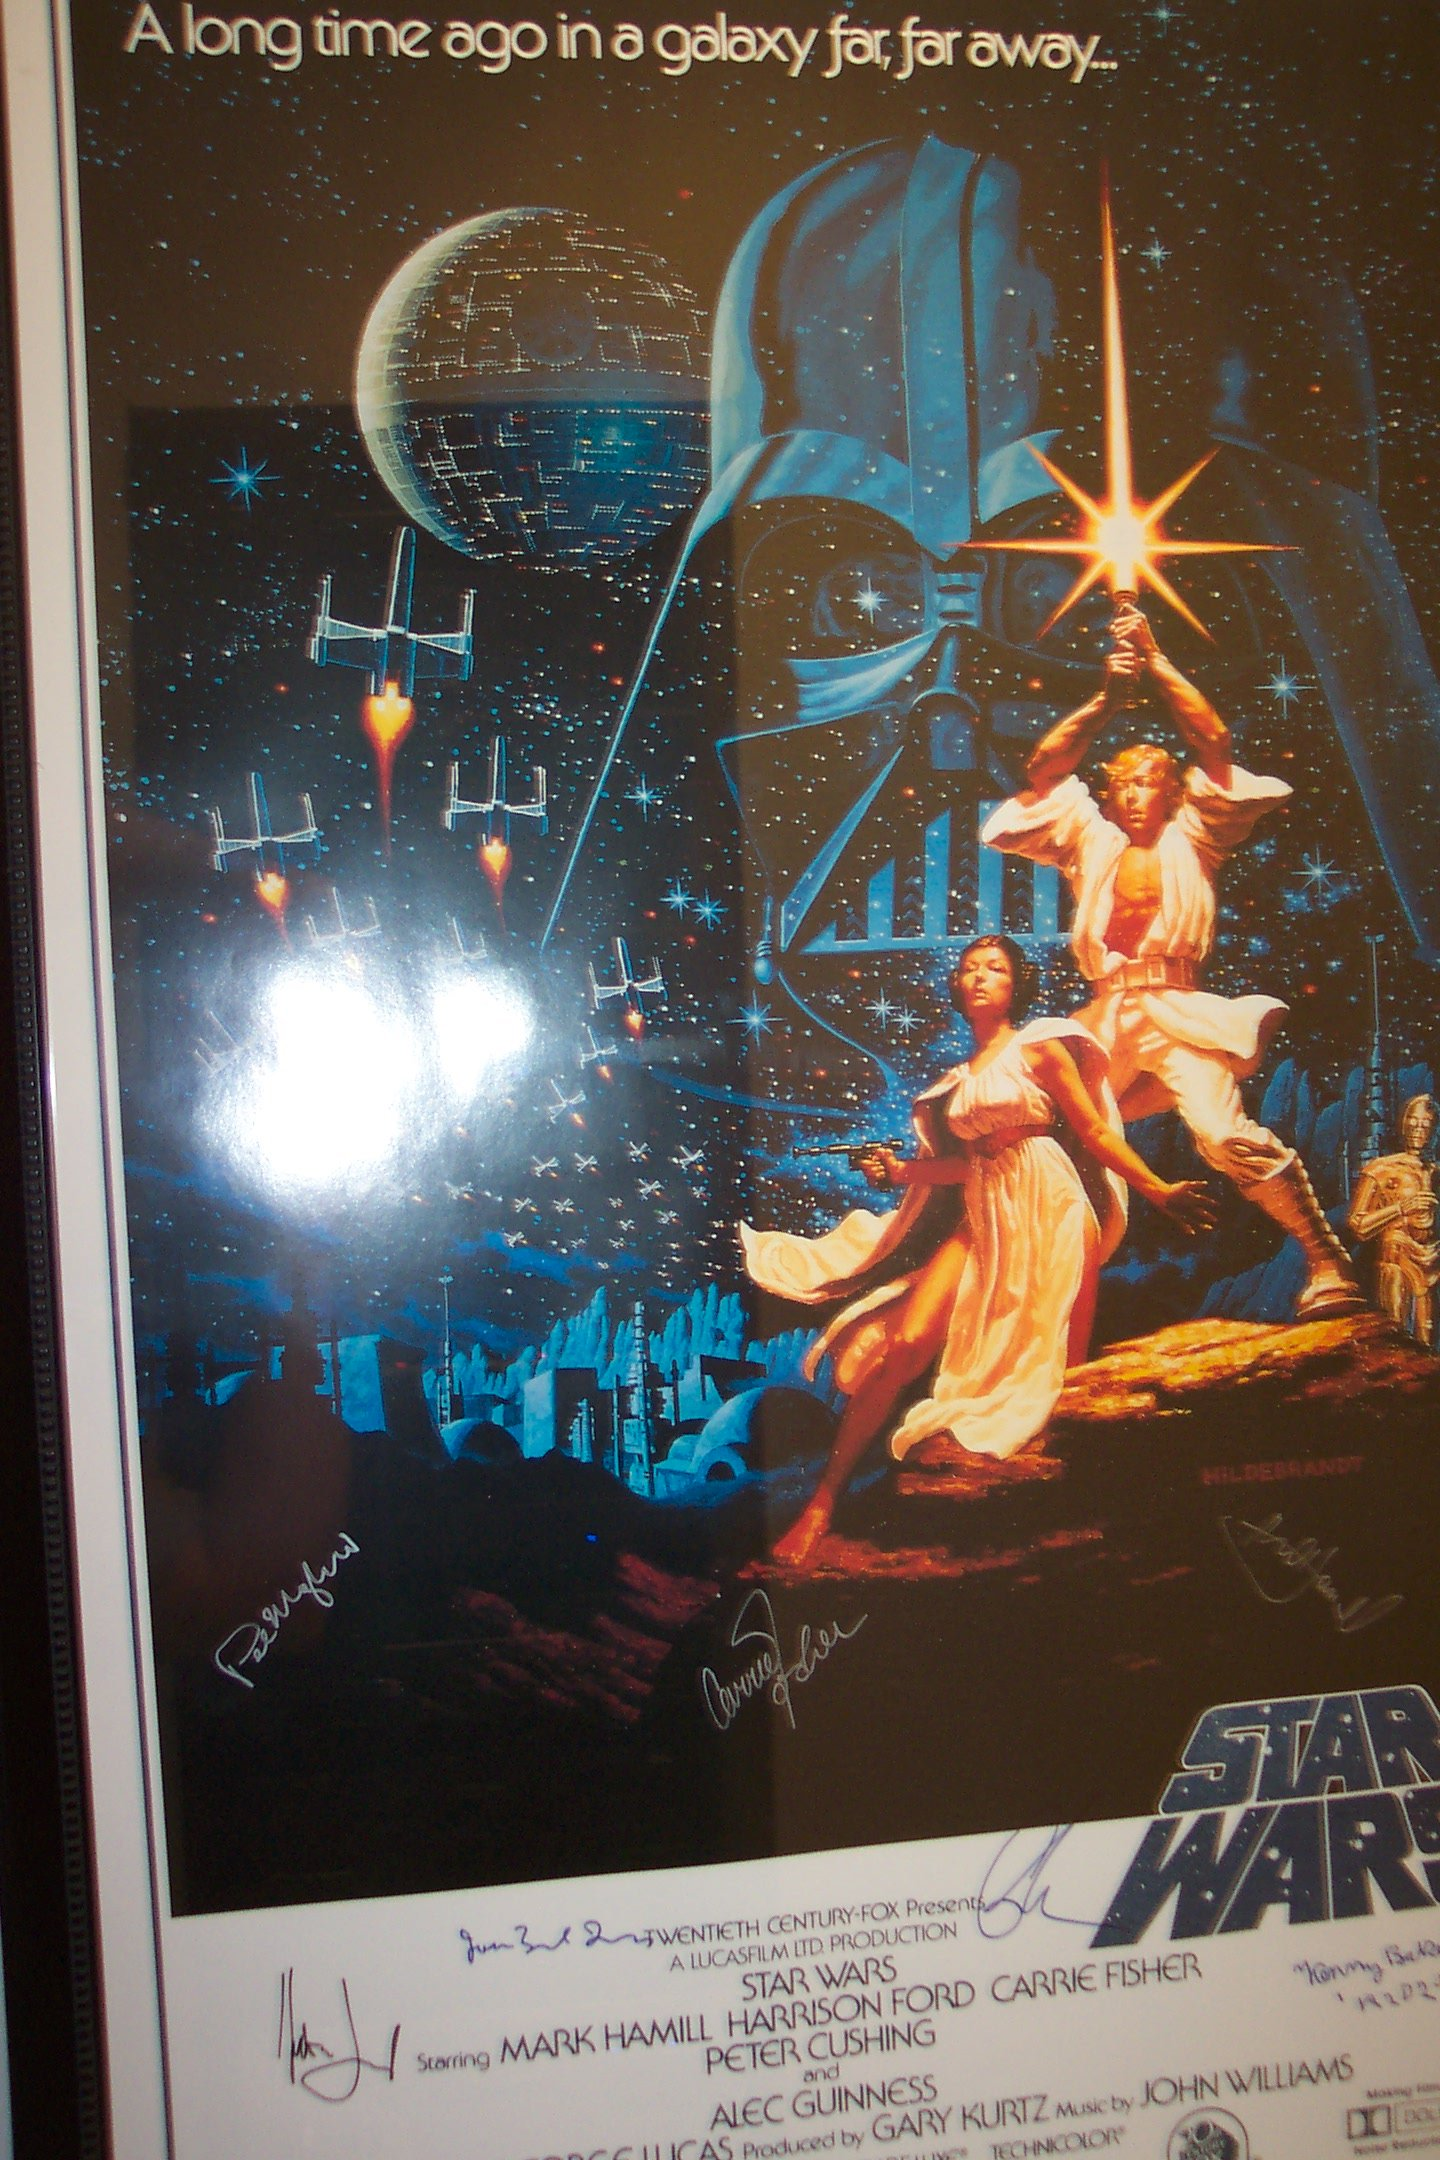 Autographed Star Wars poster - opposite gear rack in hall